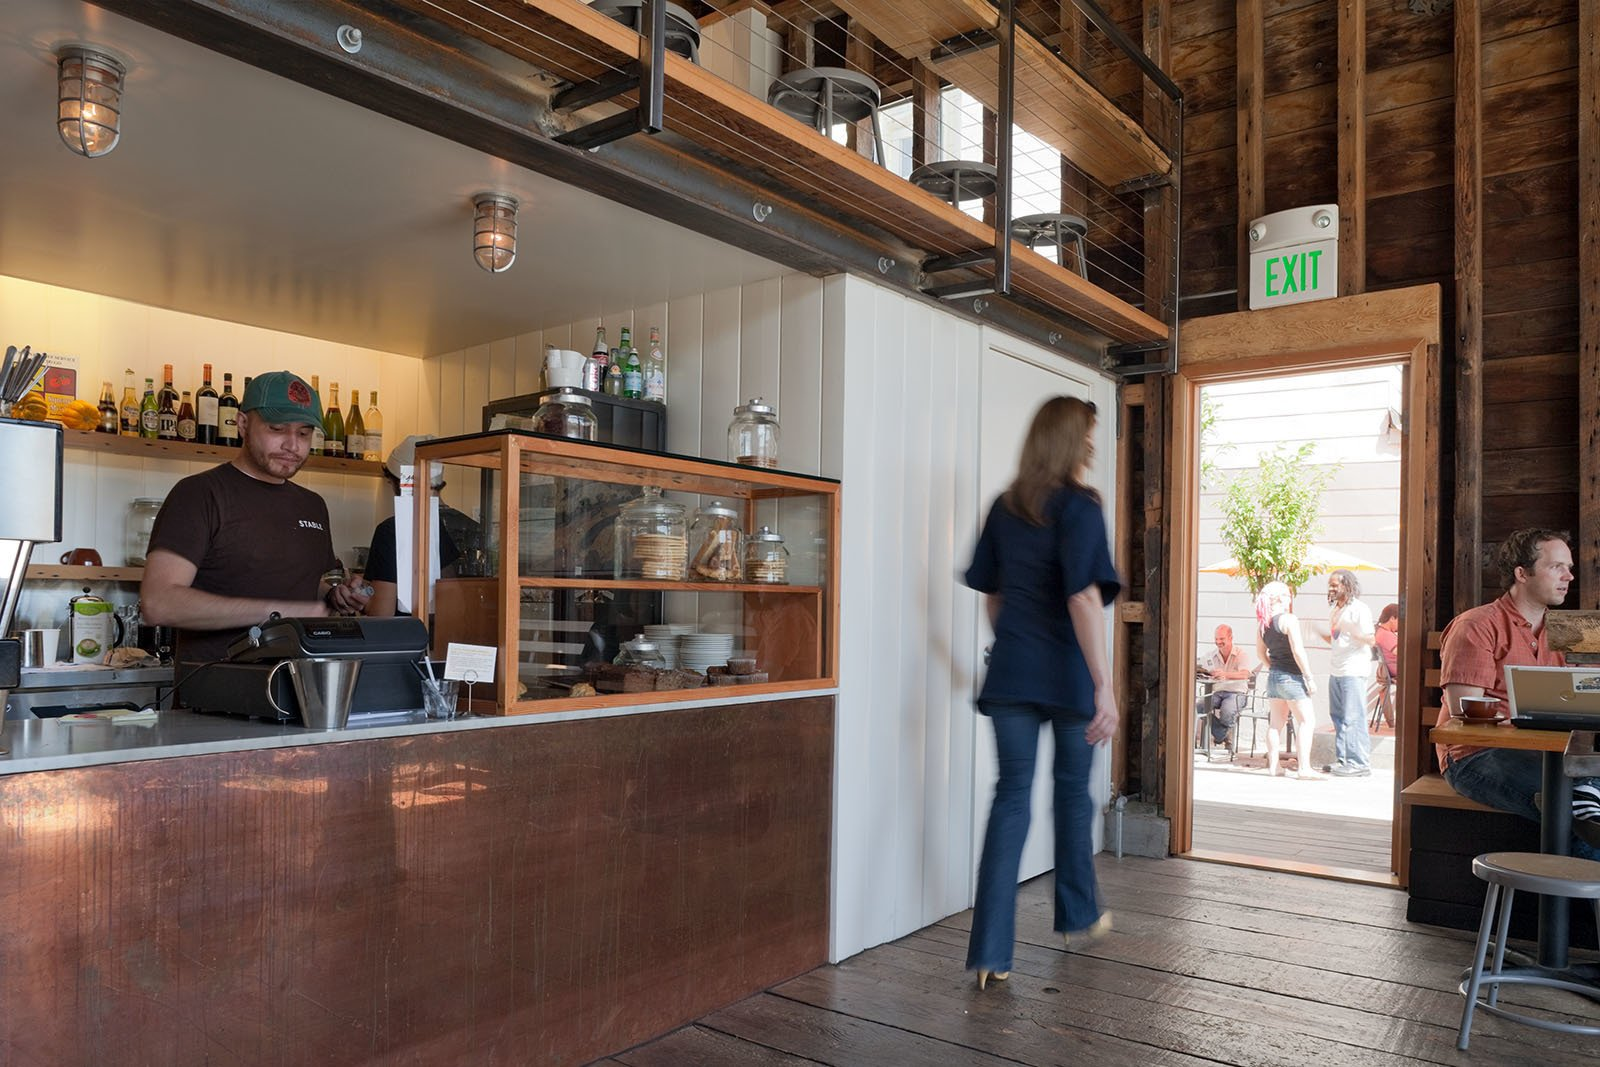 Stable Cafe  Architect: Malcolm Davis Architecture  Location: San Francisco, California  Photo 5 of 5 in Architecture + Food = Stable Cafe